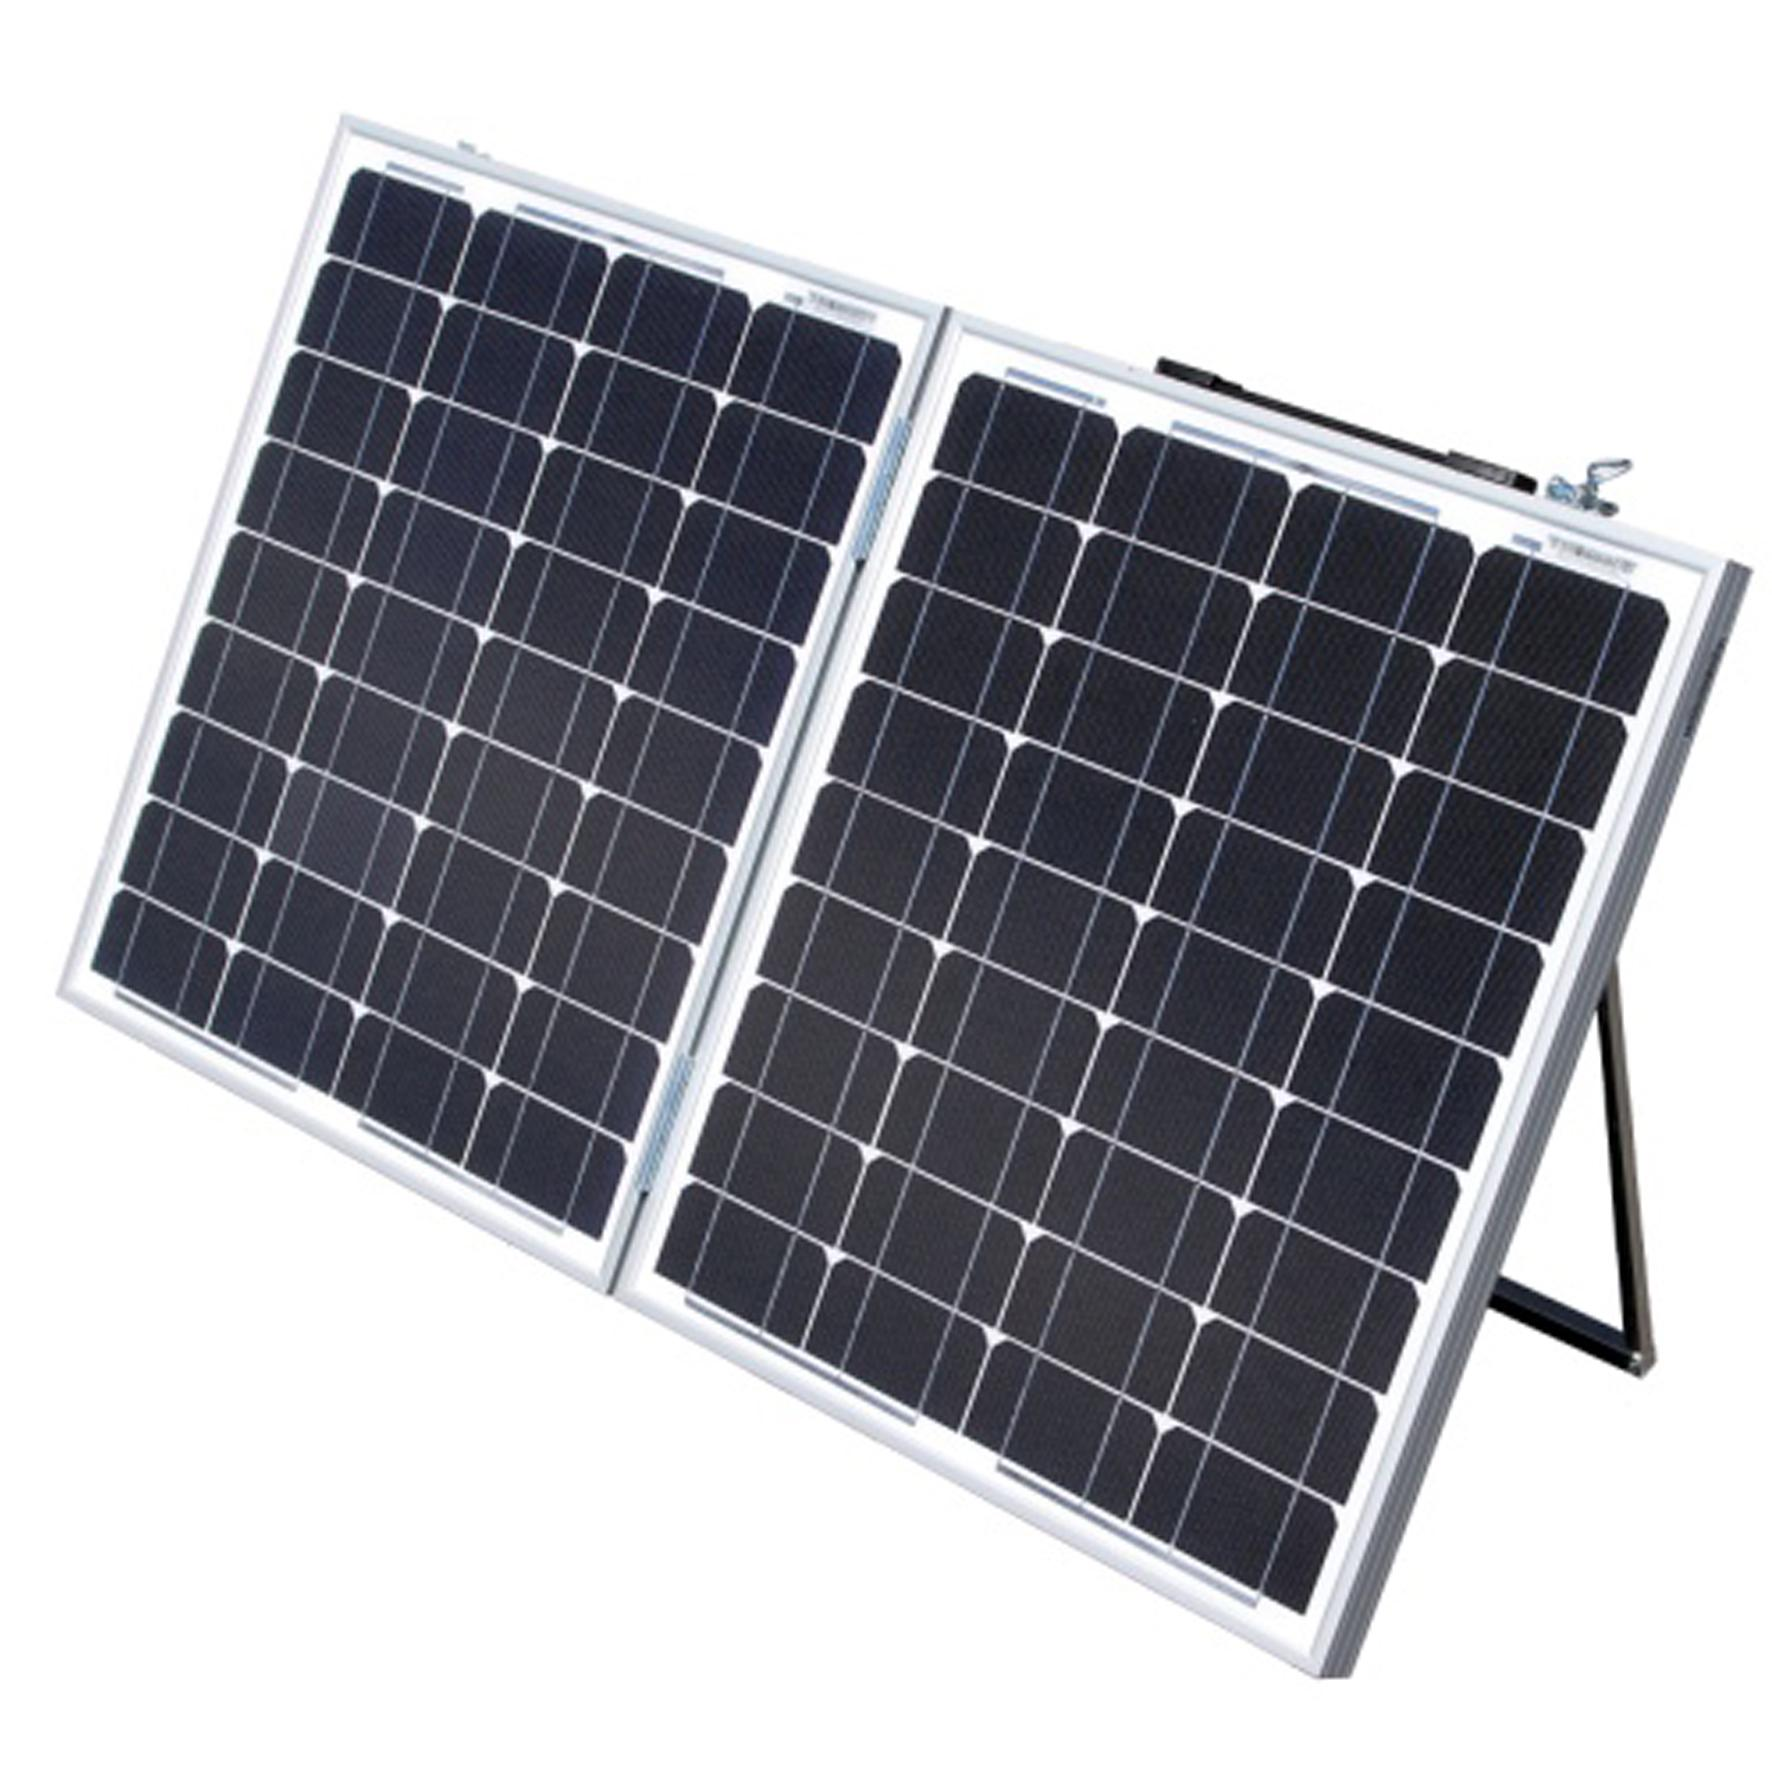 Blue Apple 110 Watt Portable Panel Home Of 12 Volt